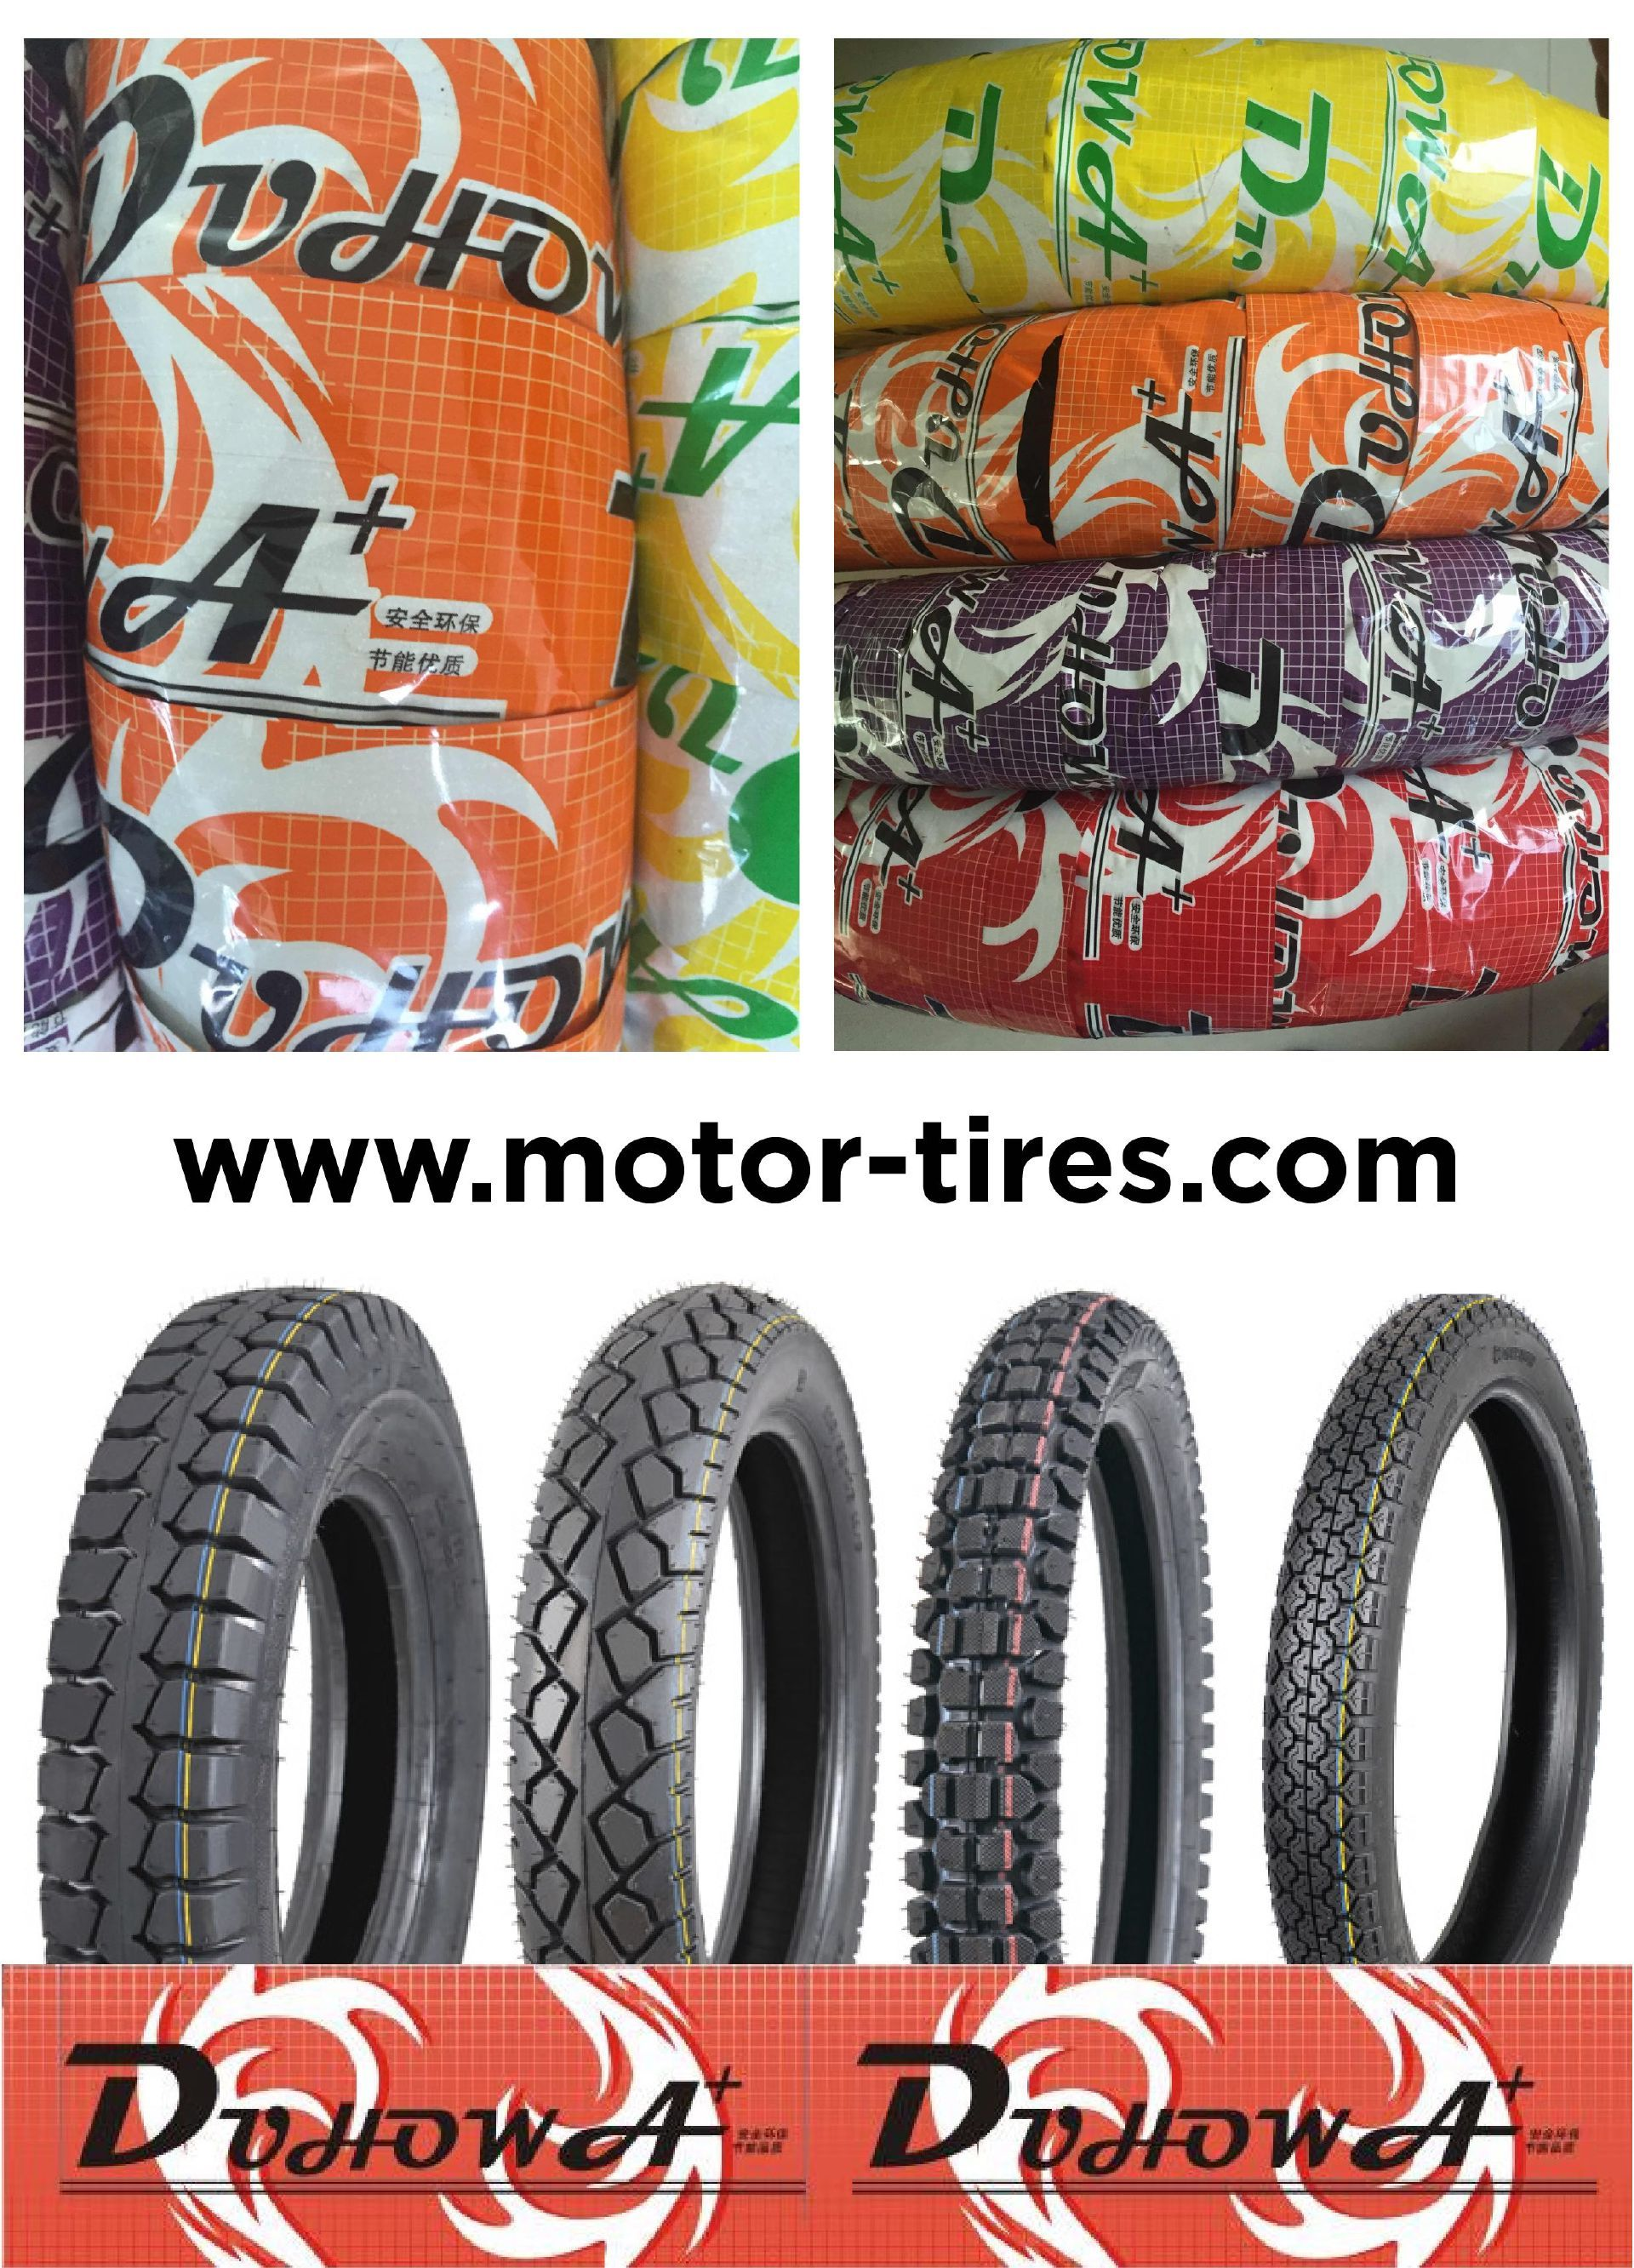 New Packaging for Duhow Motorcycle Tyres